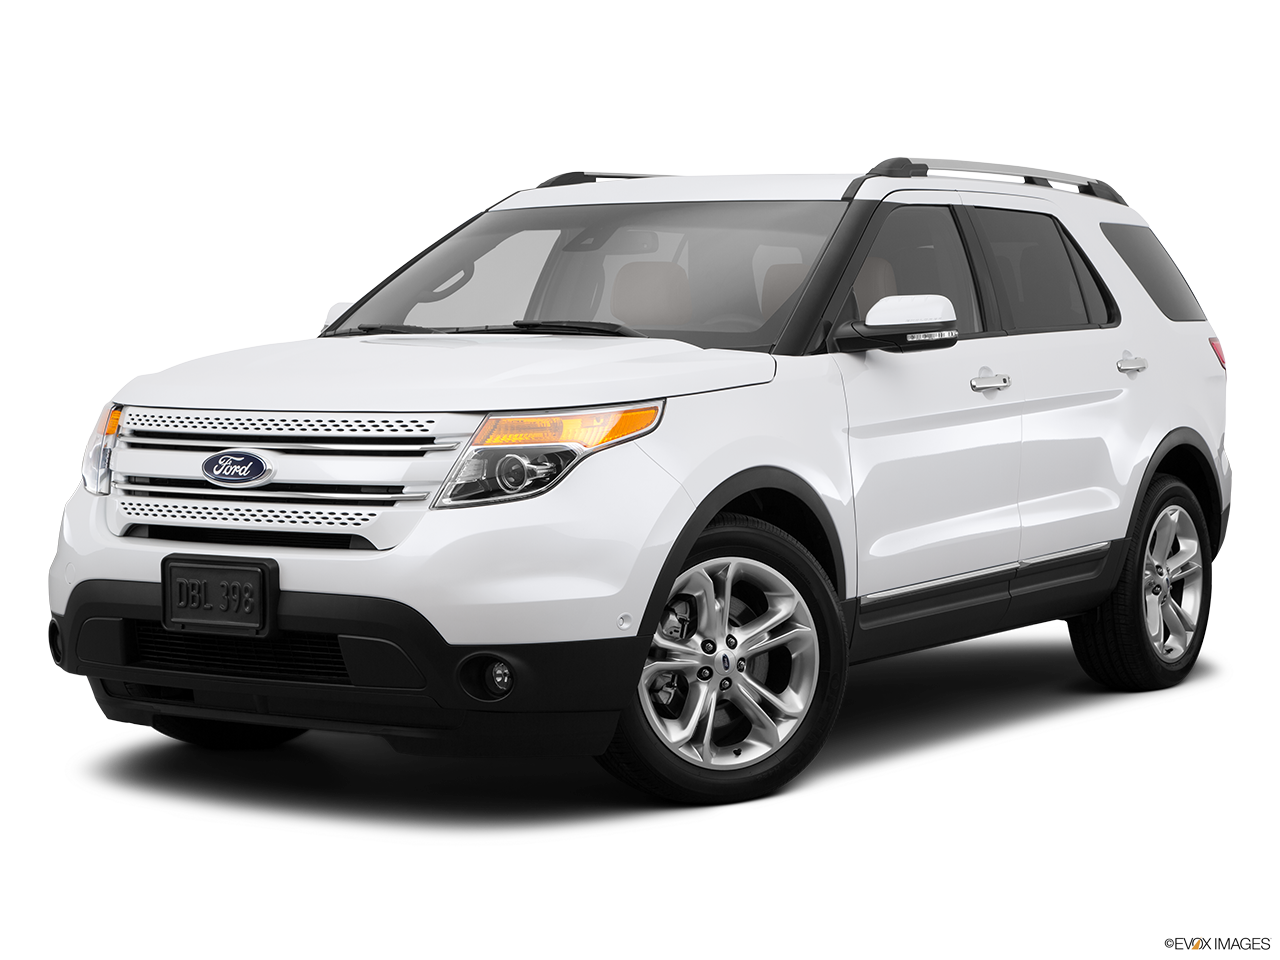 Test Drive A 2015 Ford Explorer at Doenges Ford in Tulsa